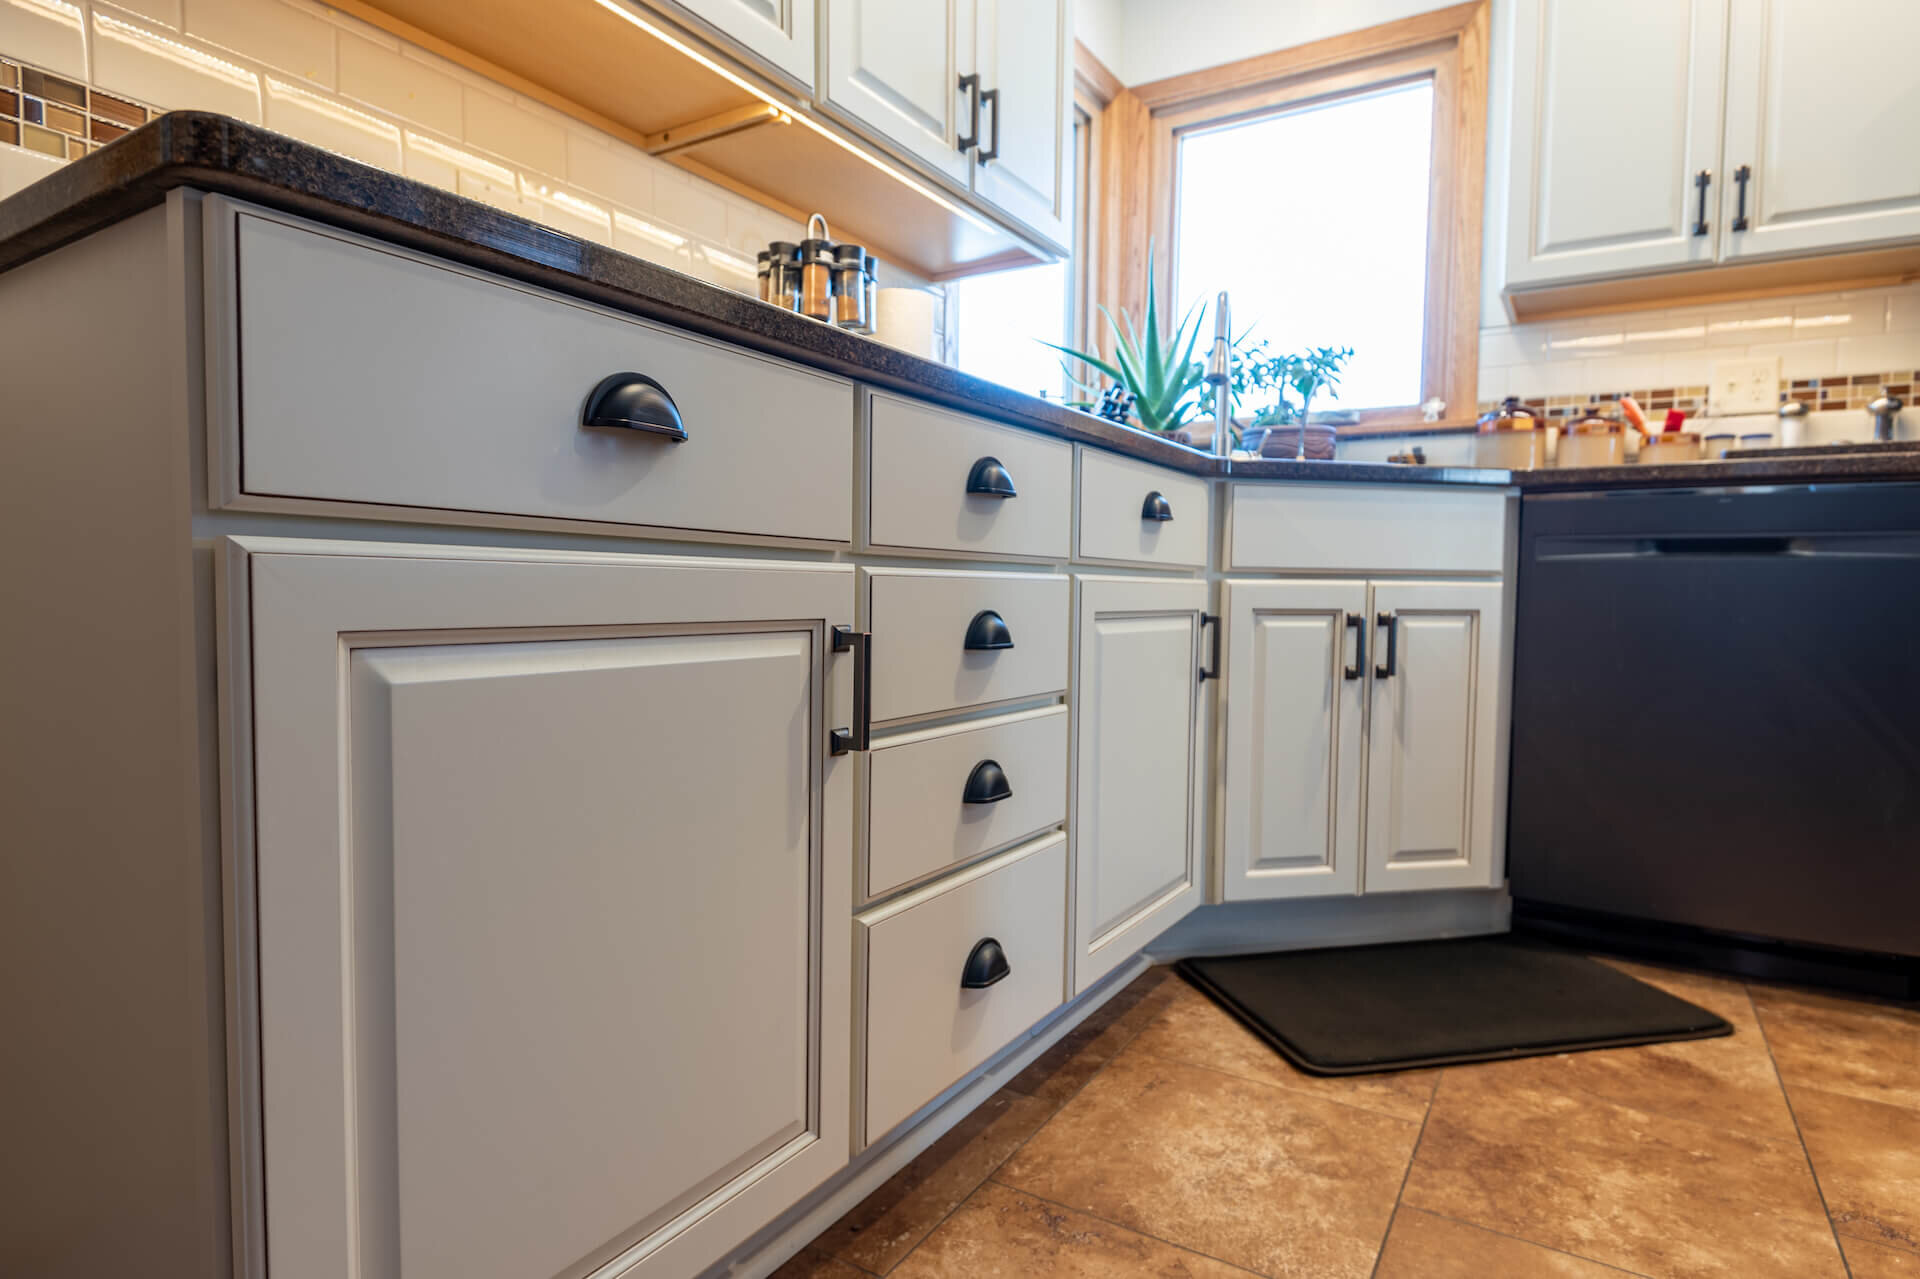 Home Renovation With New Kitchen And Bathroom Surround